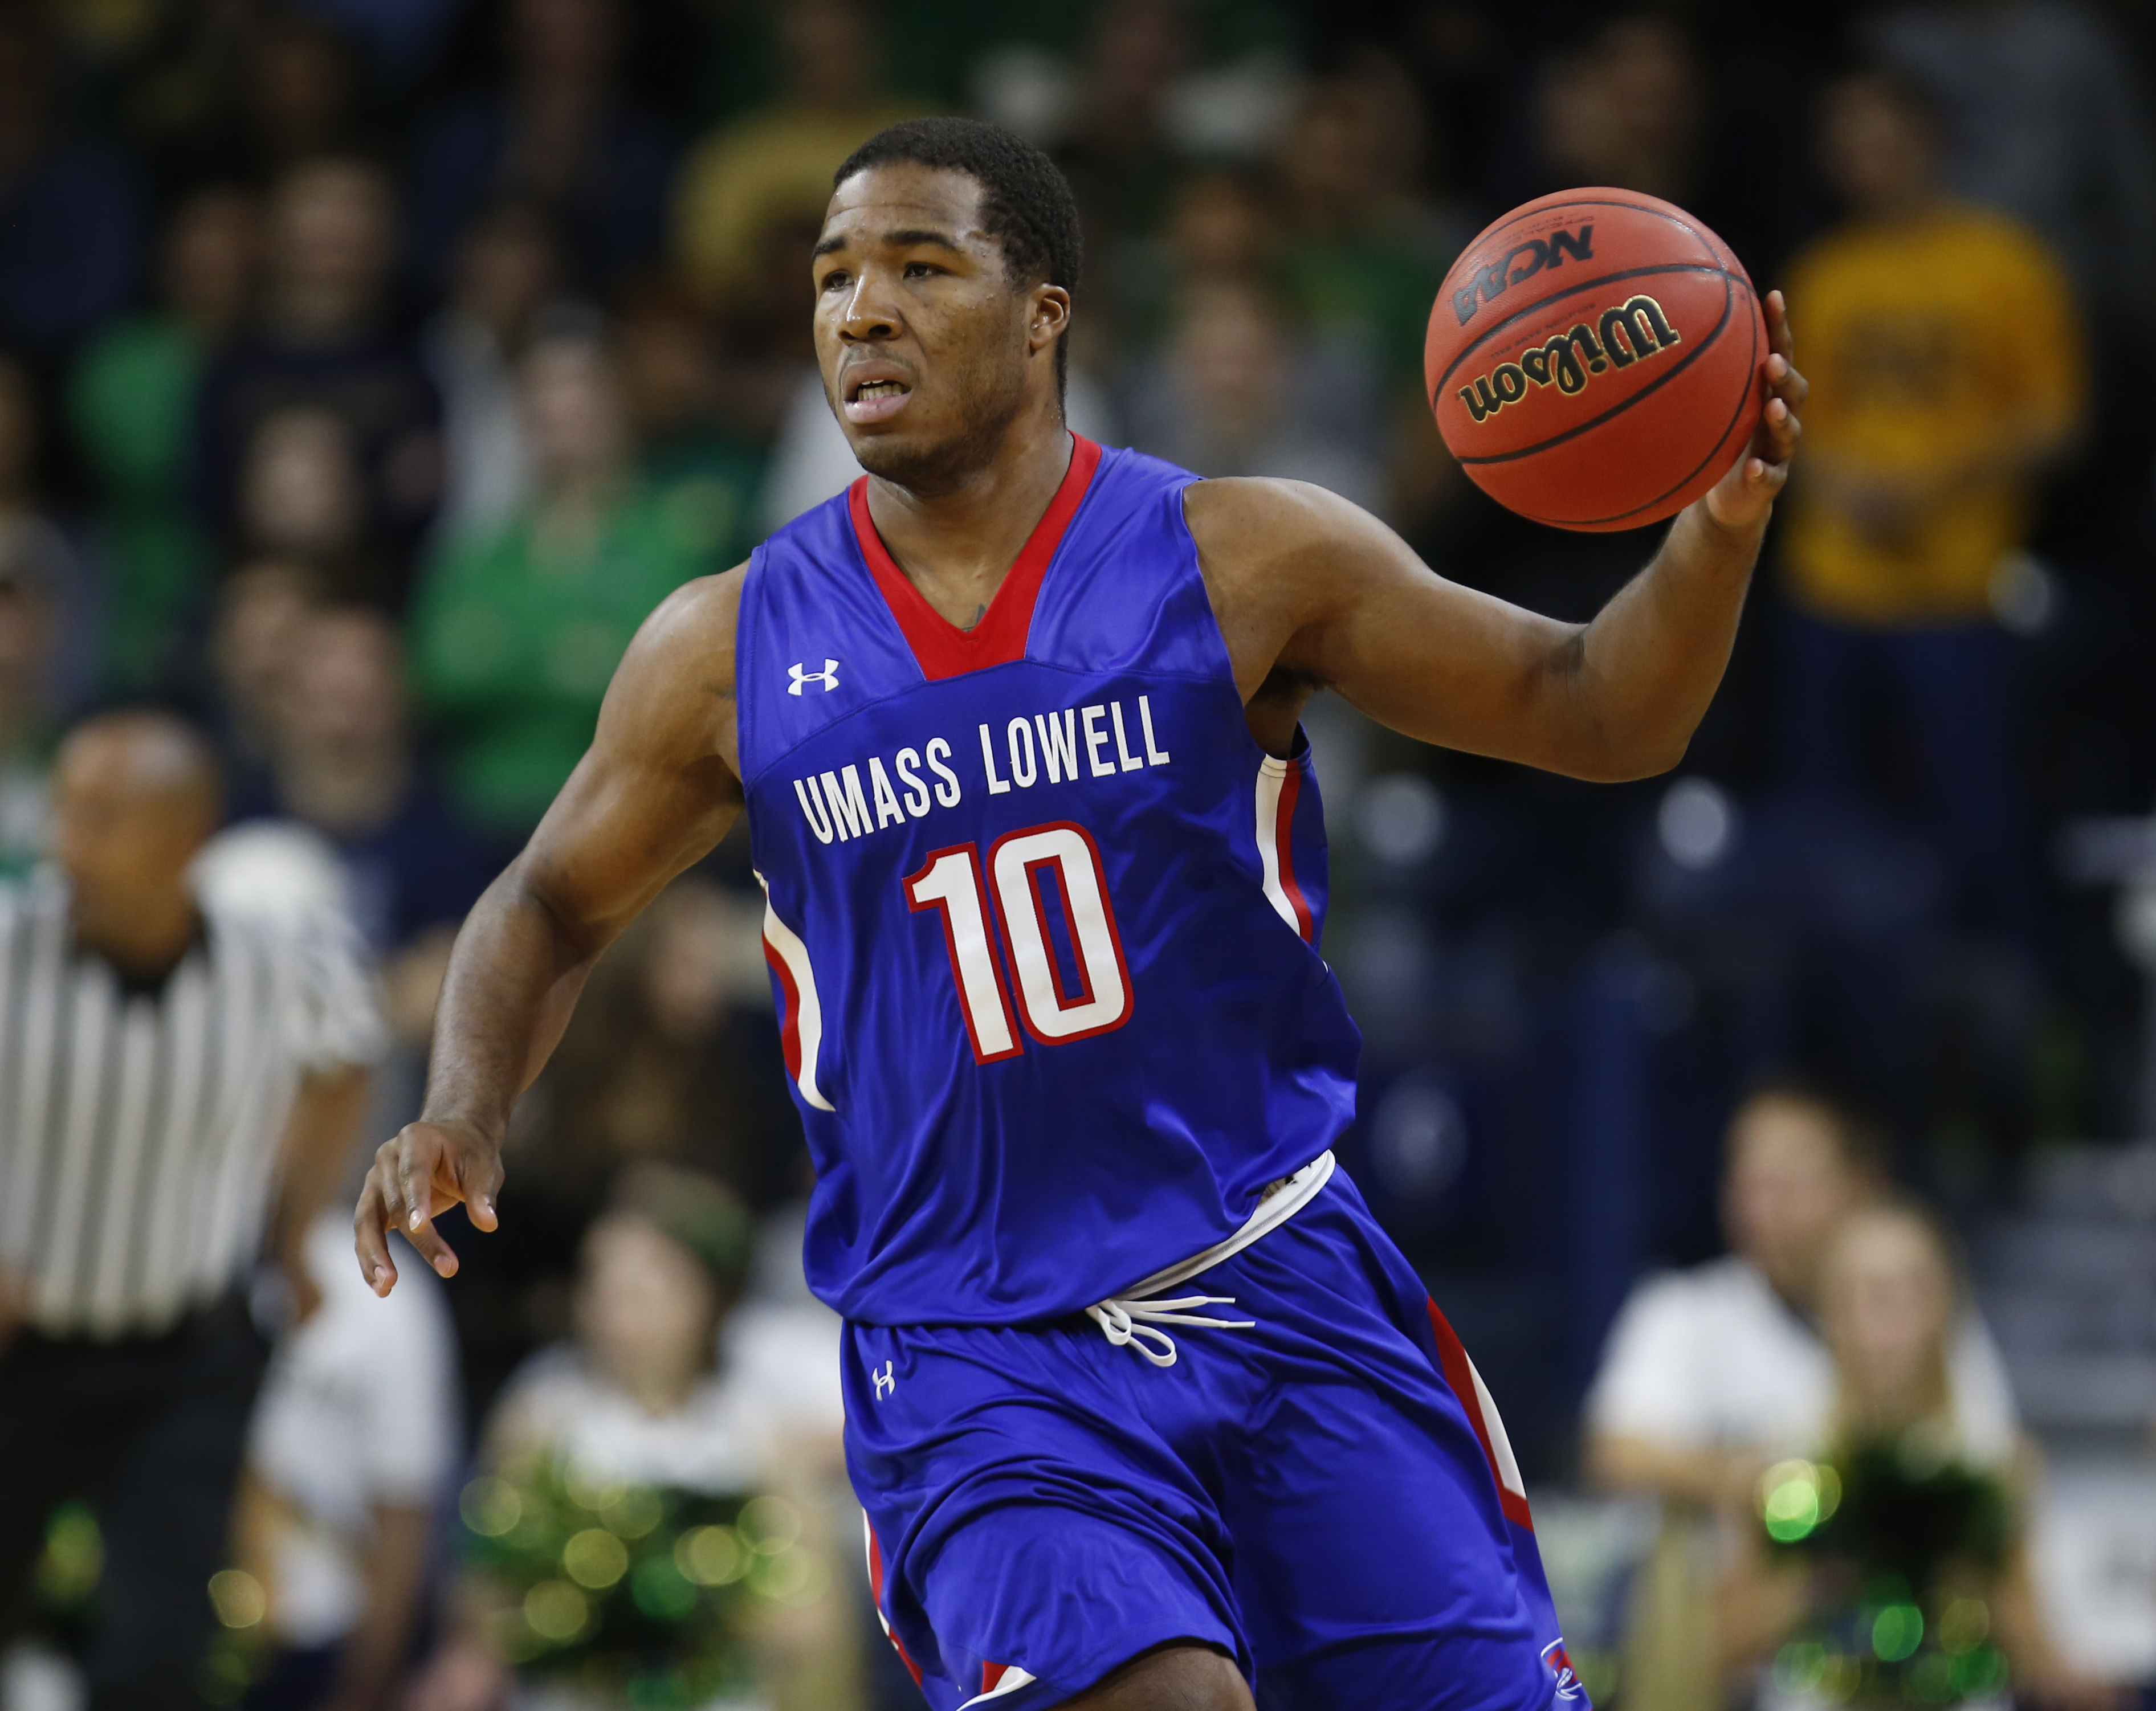 Jahad Thomas did it all for UMass Lowell in their 68-66 victory over Boston College.